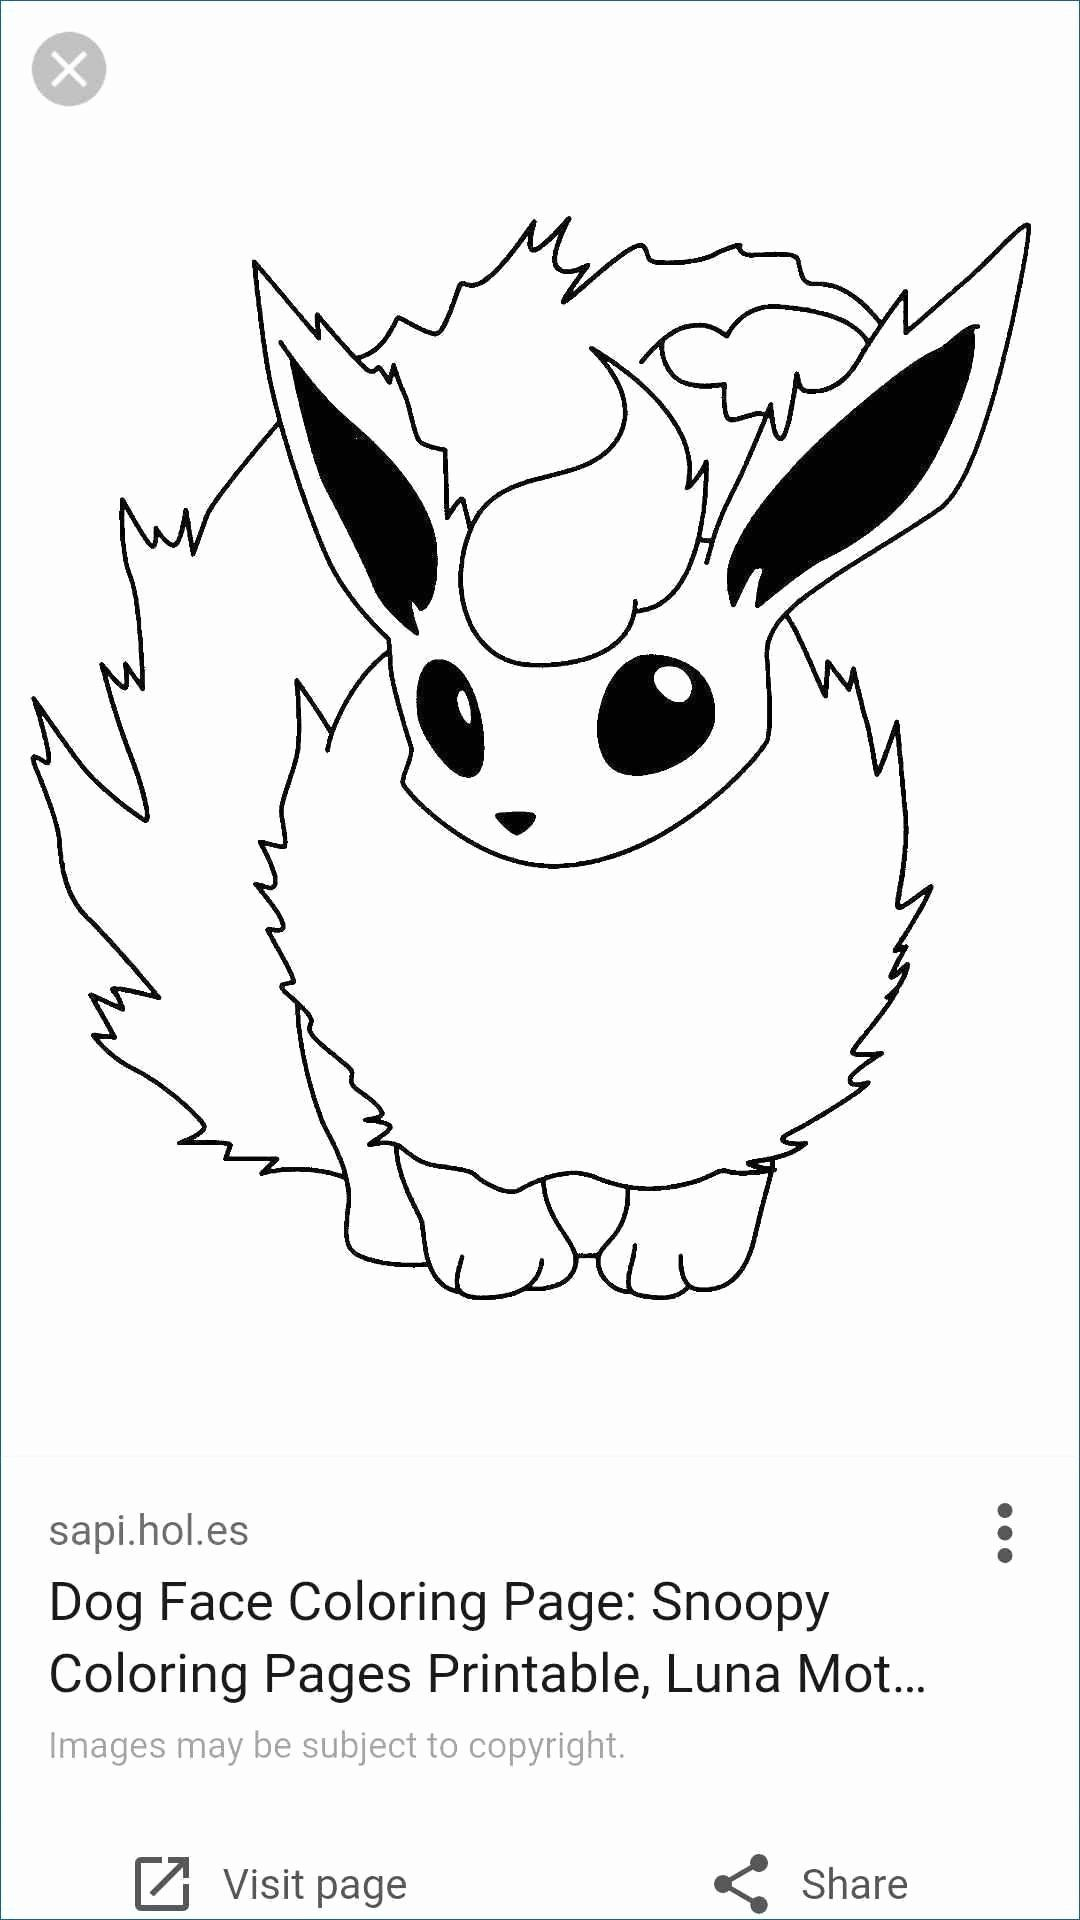 Easter Coloring Book Printable Unique Beautiful Minions Coloring Pages Dog Coloring Page Pokemon Coloring Pages Horse Coloring Pages [ 1920 x 1080 Pixel ]